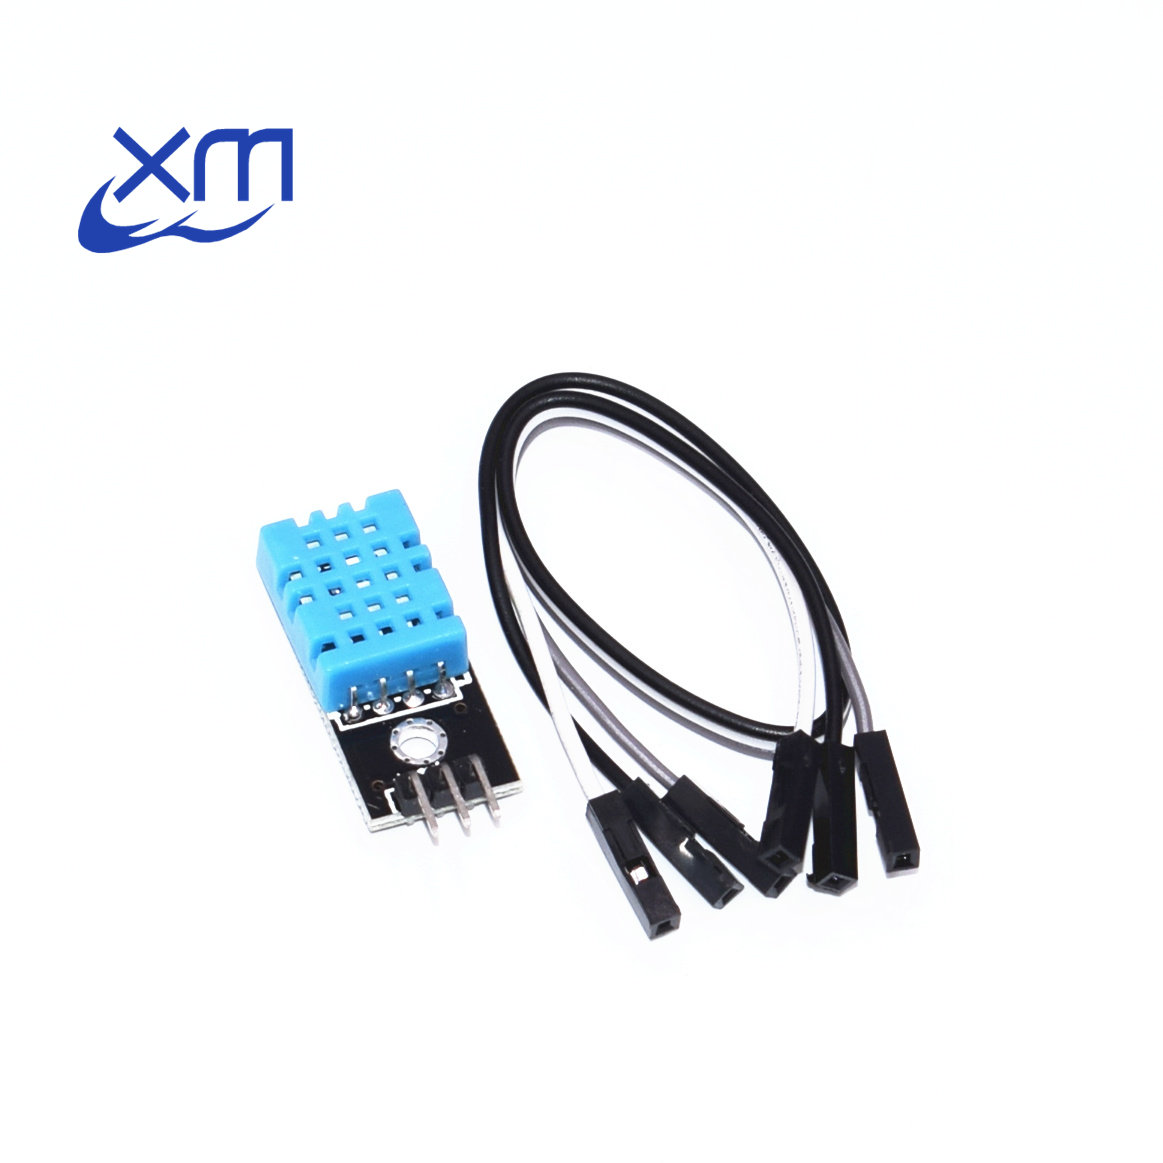 Free Shipping DHT11 Temperature and Relative Humidity Sensor Module With Cable 50PCS H22-in Integrated Circuits from Electronic Components & Supplies